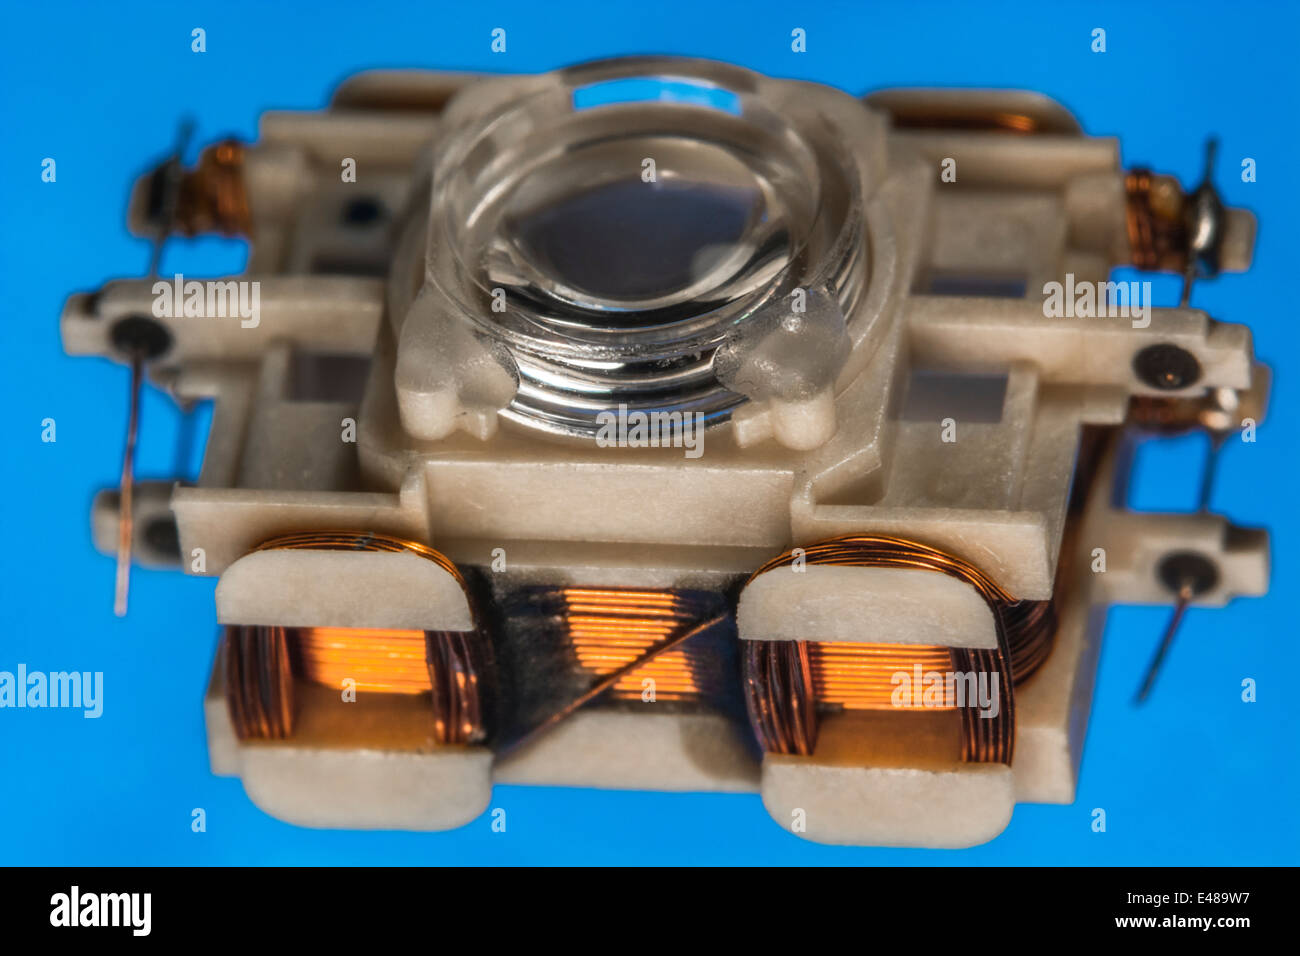 Macro-photo of laser focusing head from CDROM / DVD drive. See 'Description' for focus details. - Stock Image